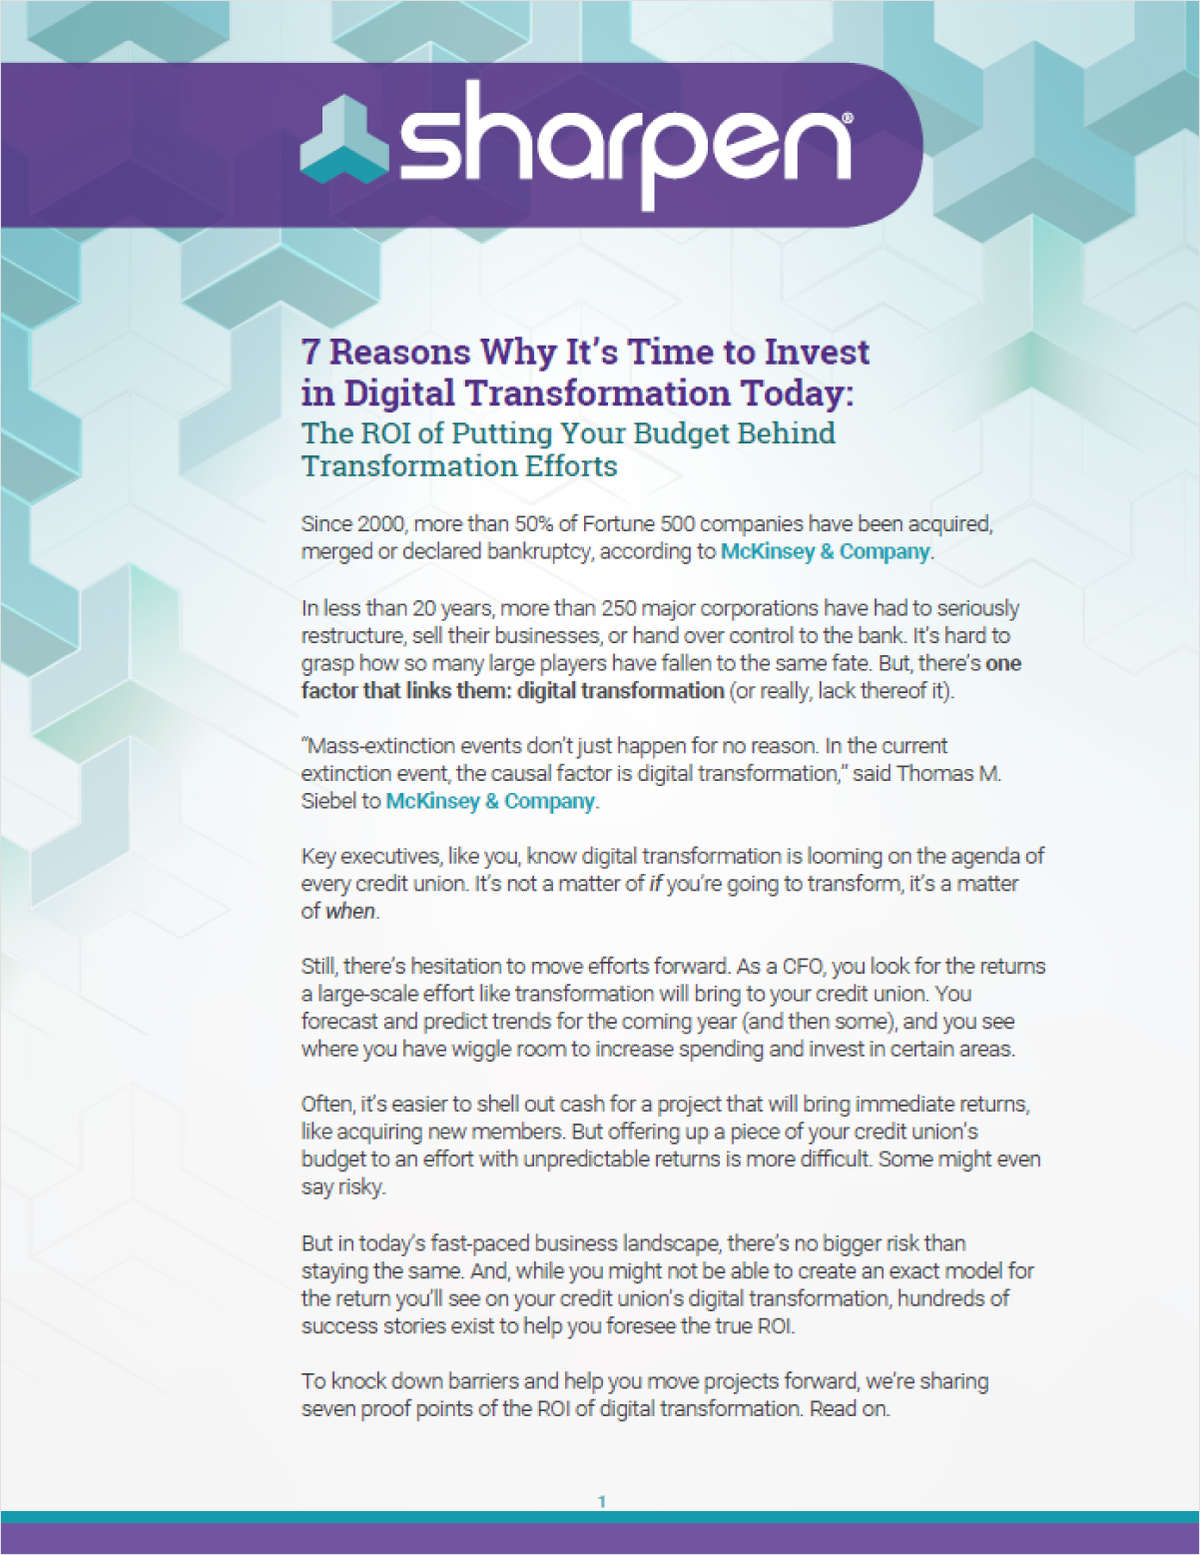 Digital Transformation Toolkit: How to Get Buy-In From Credit Union Leaders